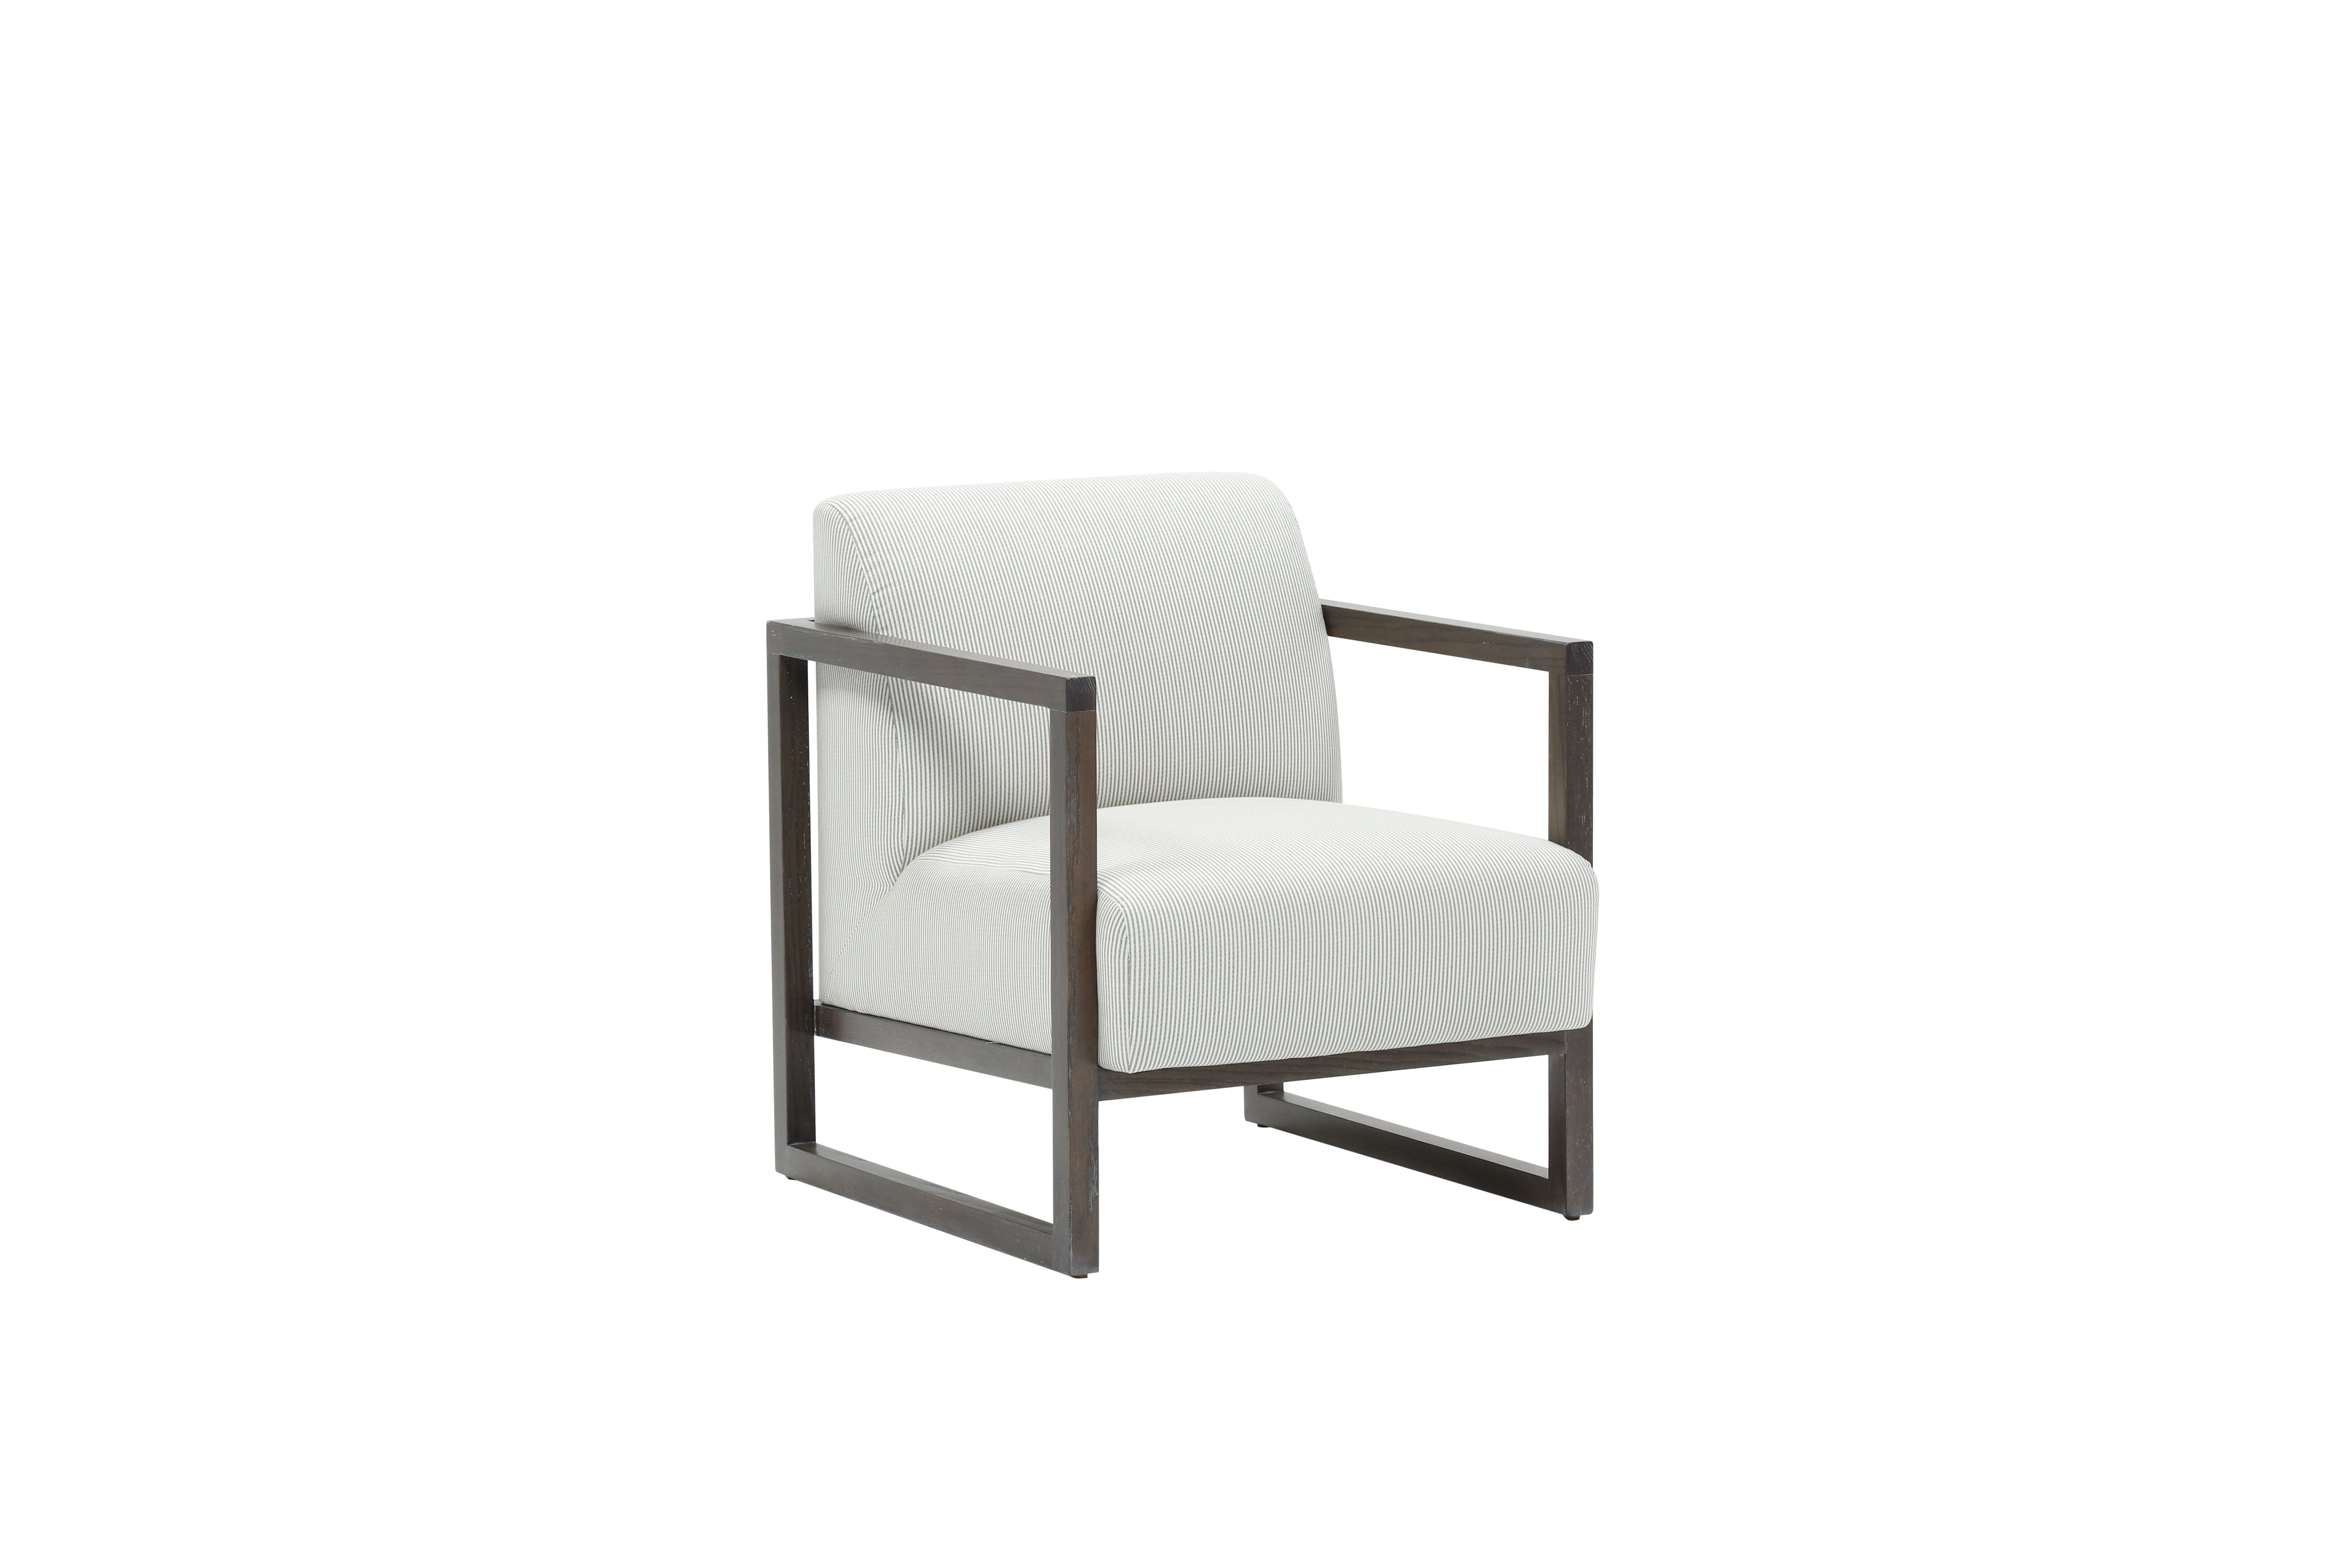 Nate Berkus Just Launched A Home Collection With Hubby Jeremiah Within Matteo Arm Sofa Chairs By Nate Berkus And Jeremiah Brent (Image 20 of 25)